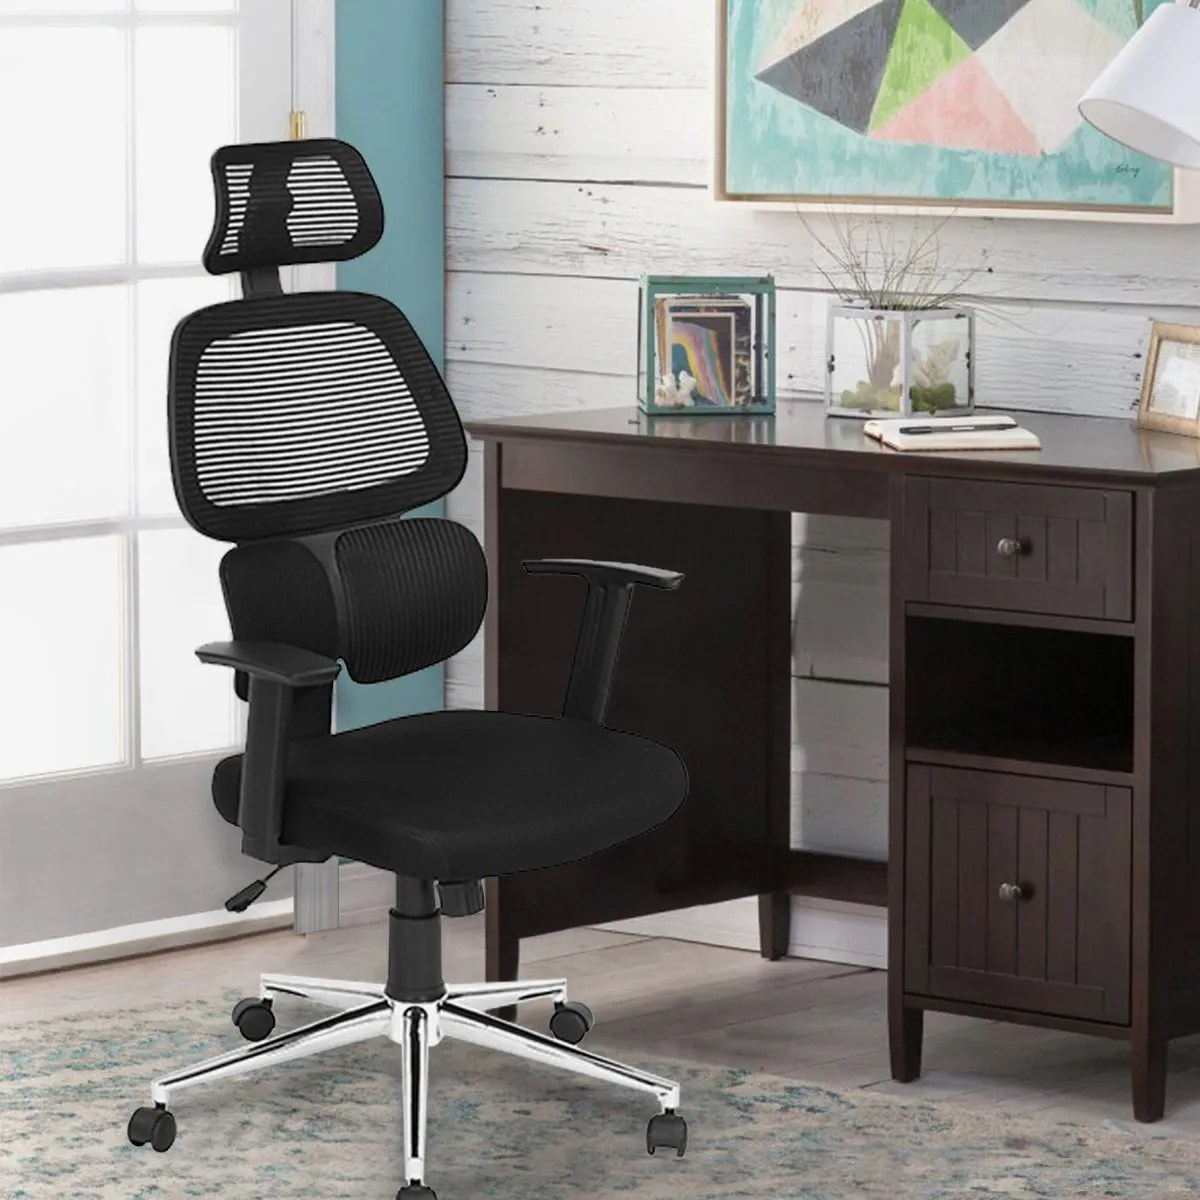 Back Support Chair 16 Best Office Chairs And Home Office Chairs 2018